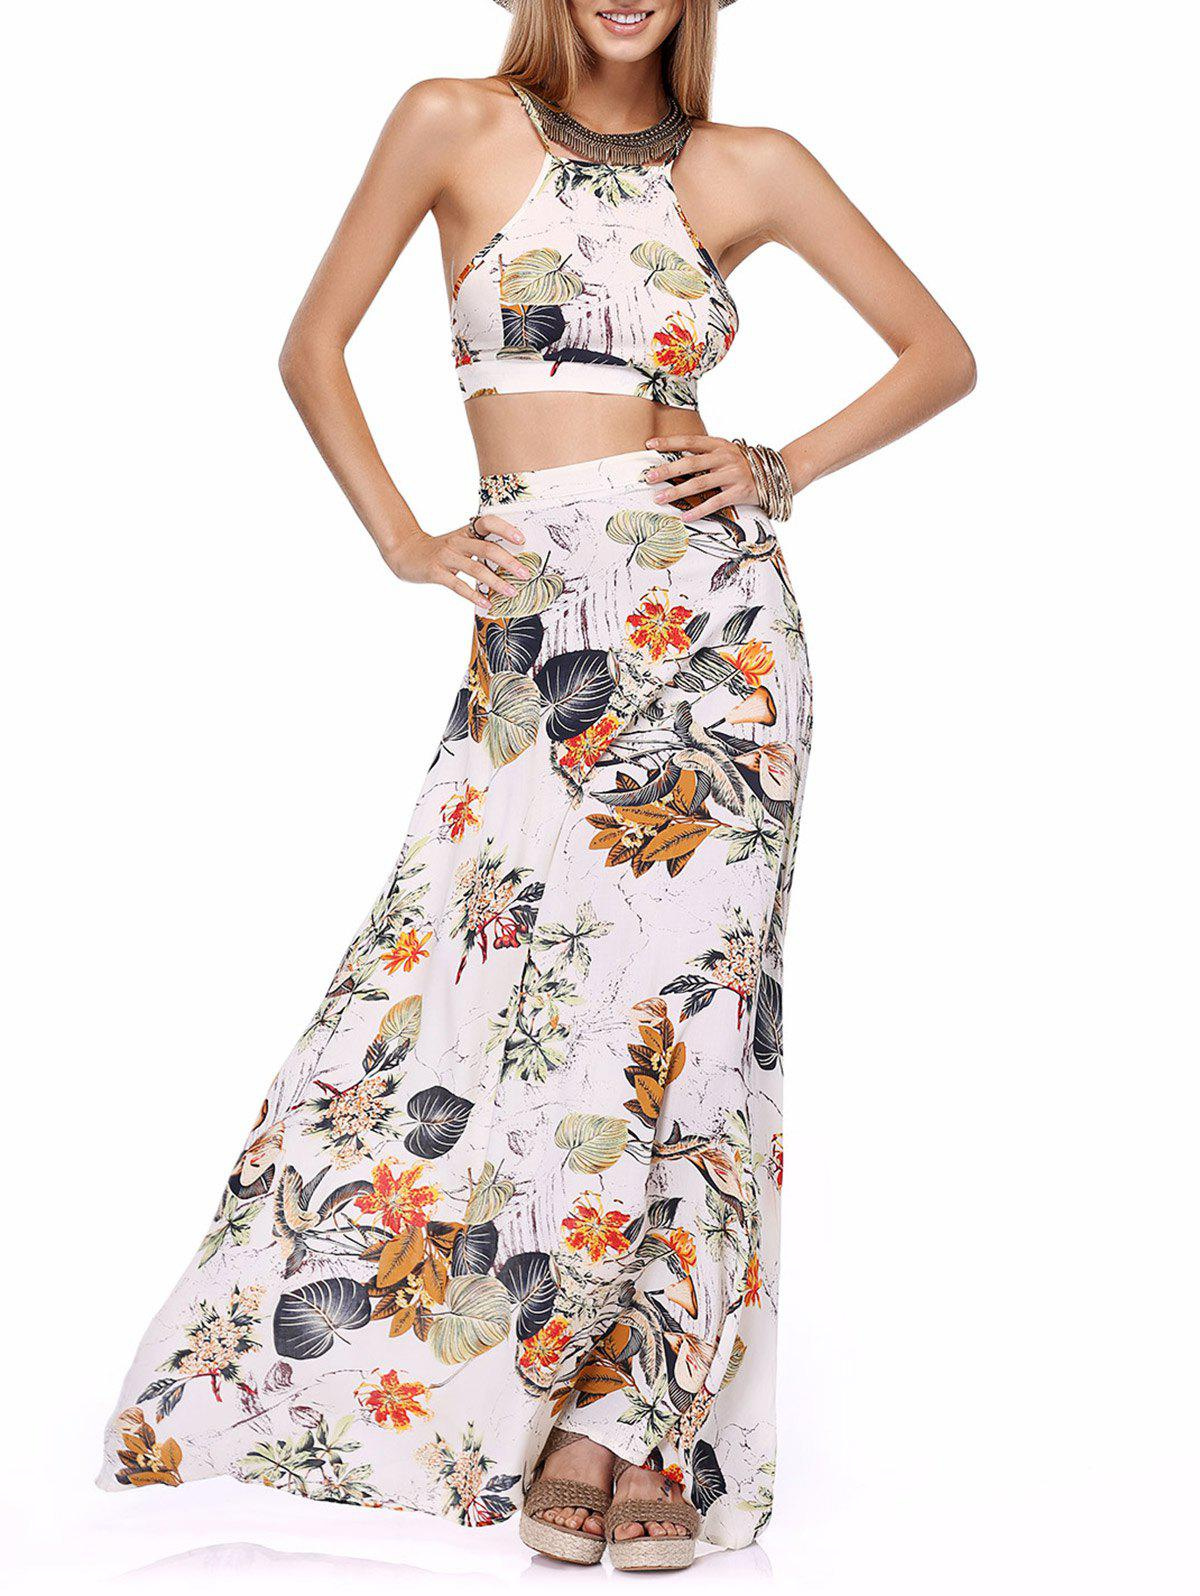 Back Lace-Up Cross Crop Top and High-Waist Maxi Skirt Twinset